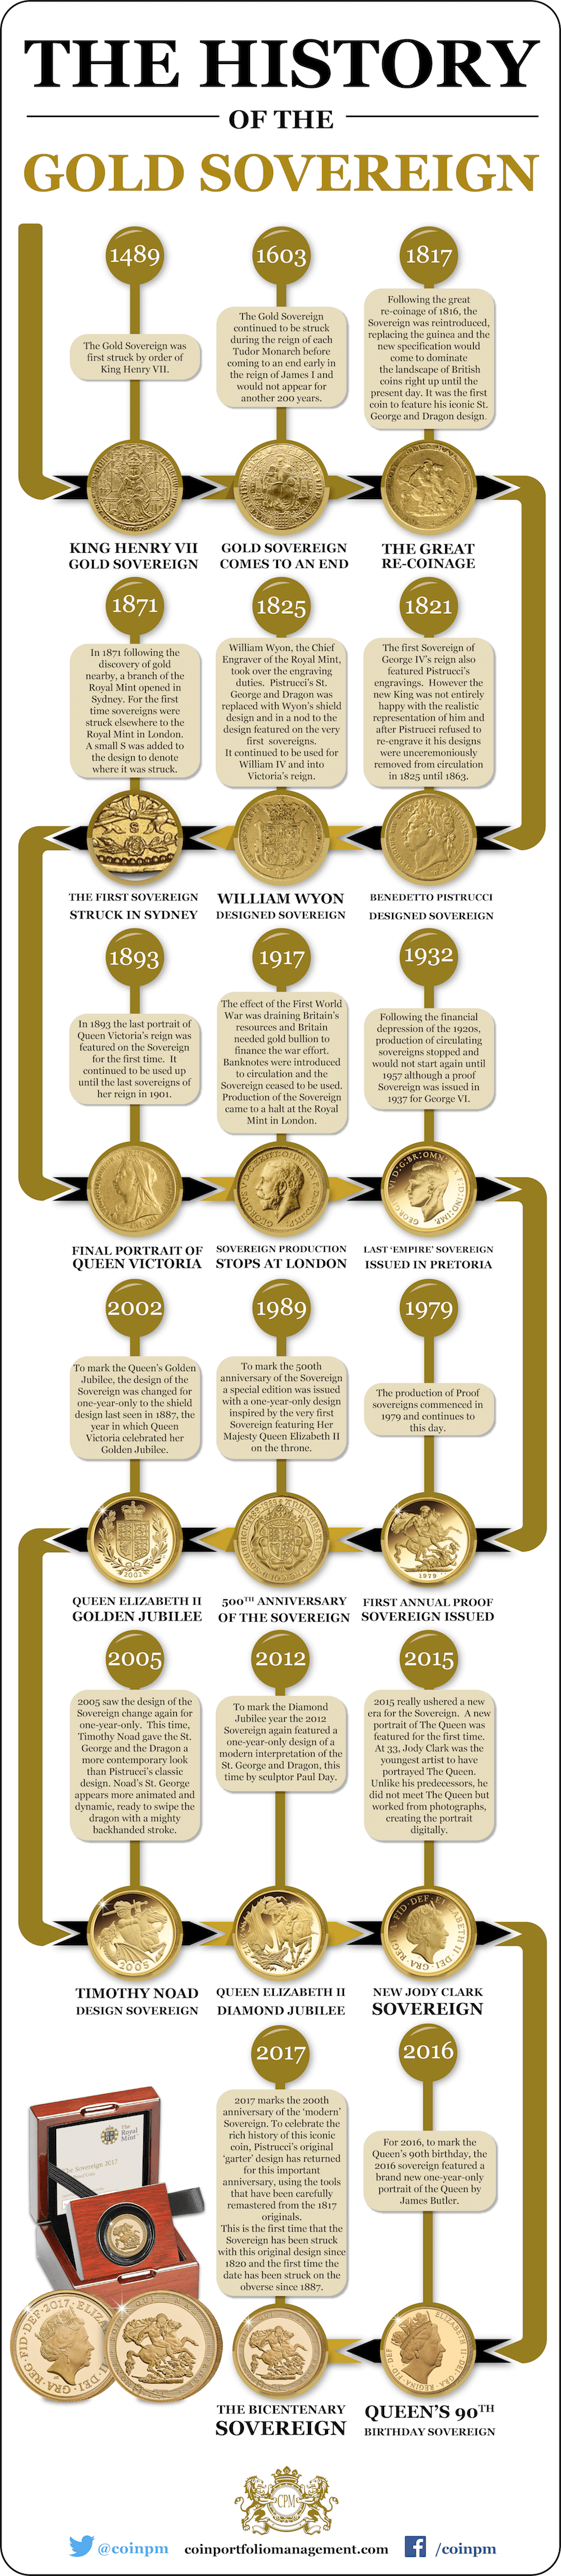 cpm sovereign infographic 650 - Released Today: The 2017 Bicentenary Sovereign